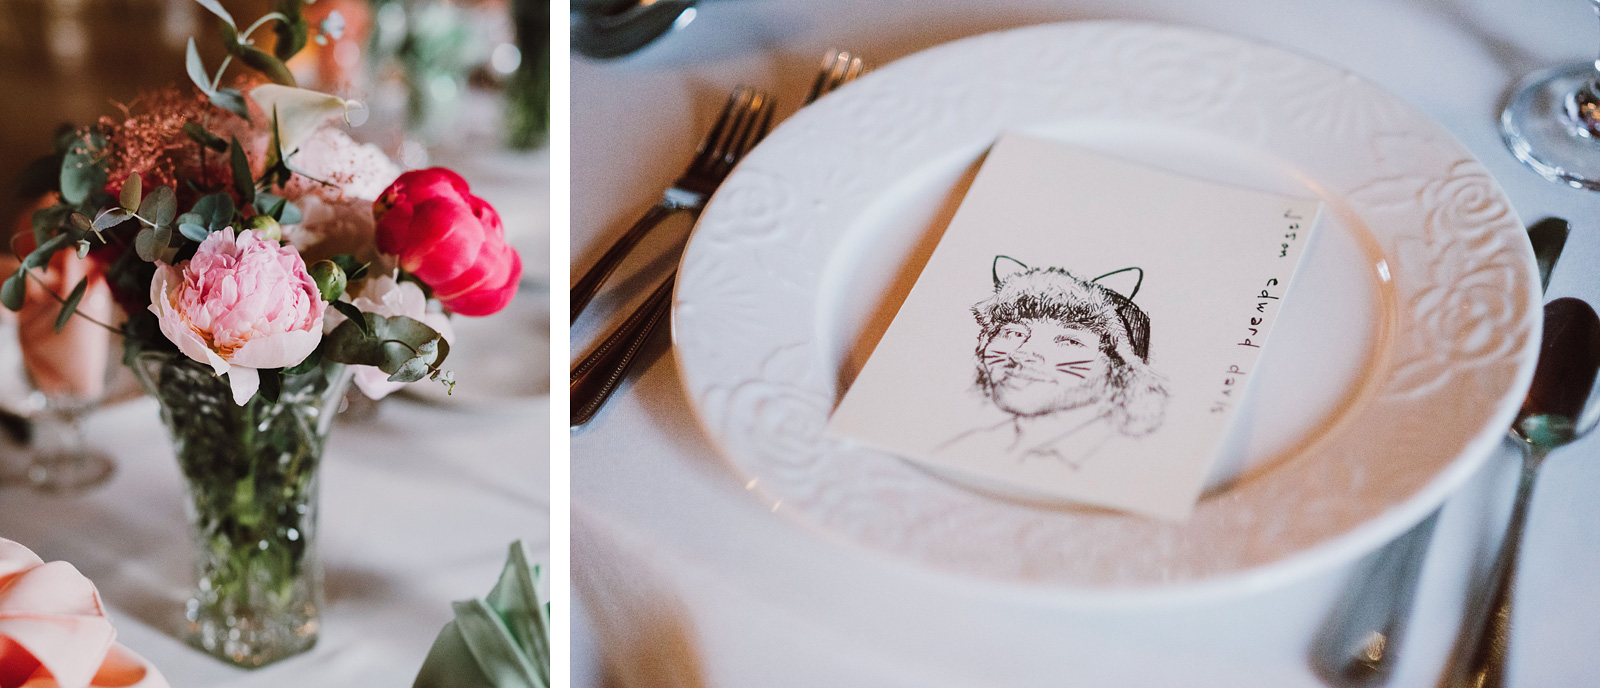 Polaris Hall Wedding decorations with drawings of guests